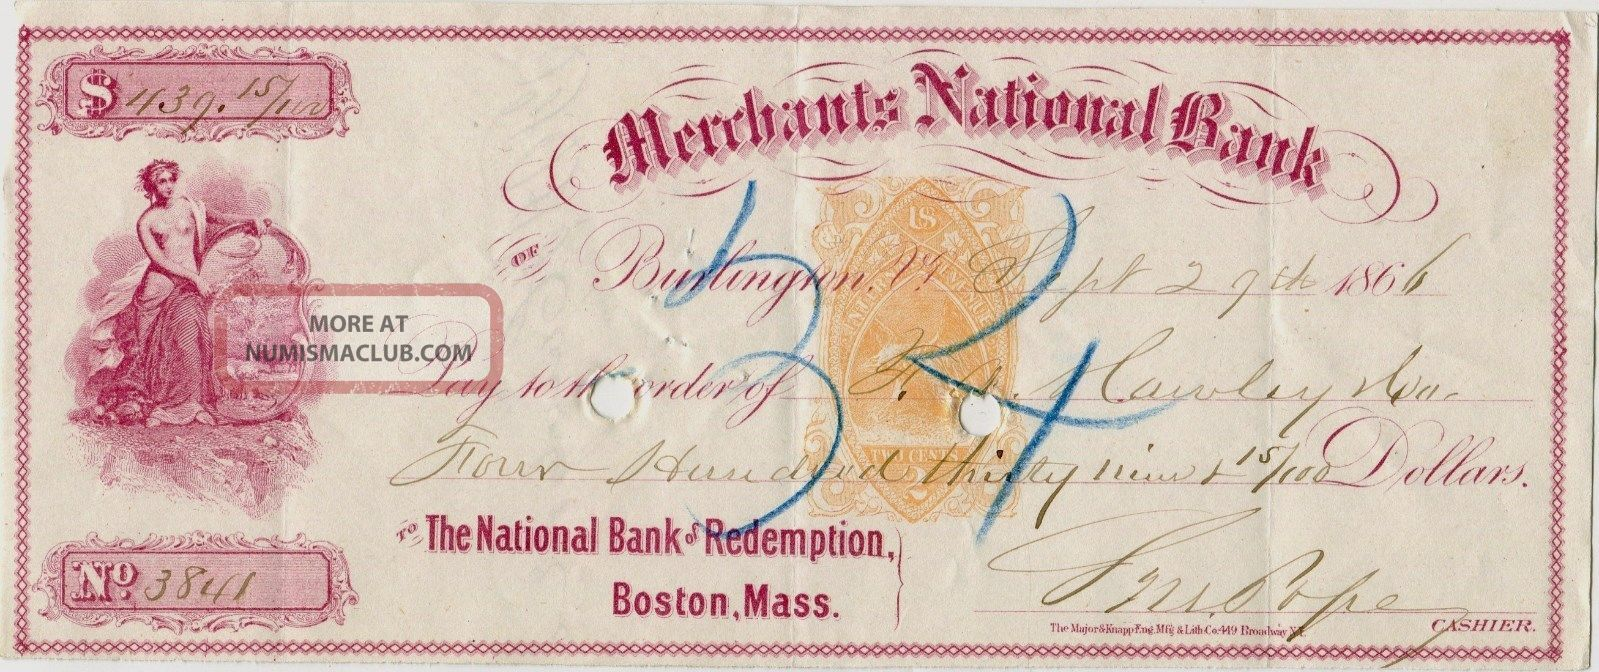 3 Merchants National Bank Burlington Vermont Bank Checks 2 Bare Breast Maidens Paper Money: US photo